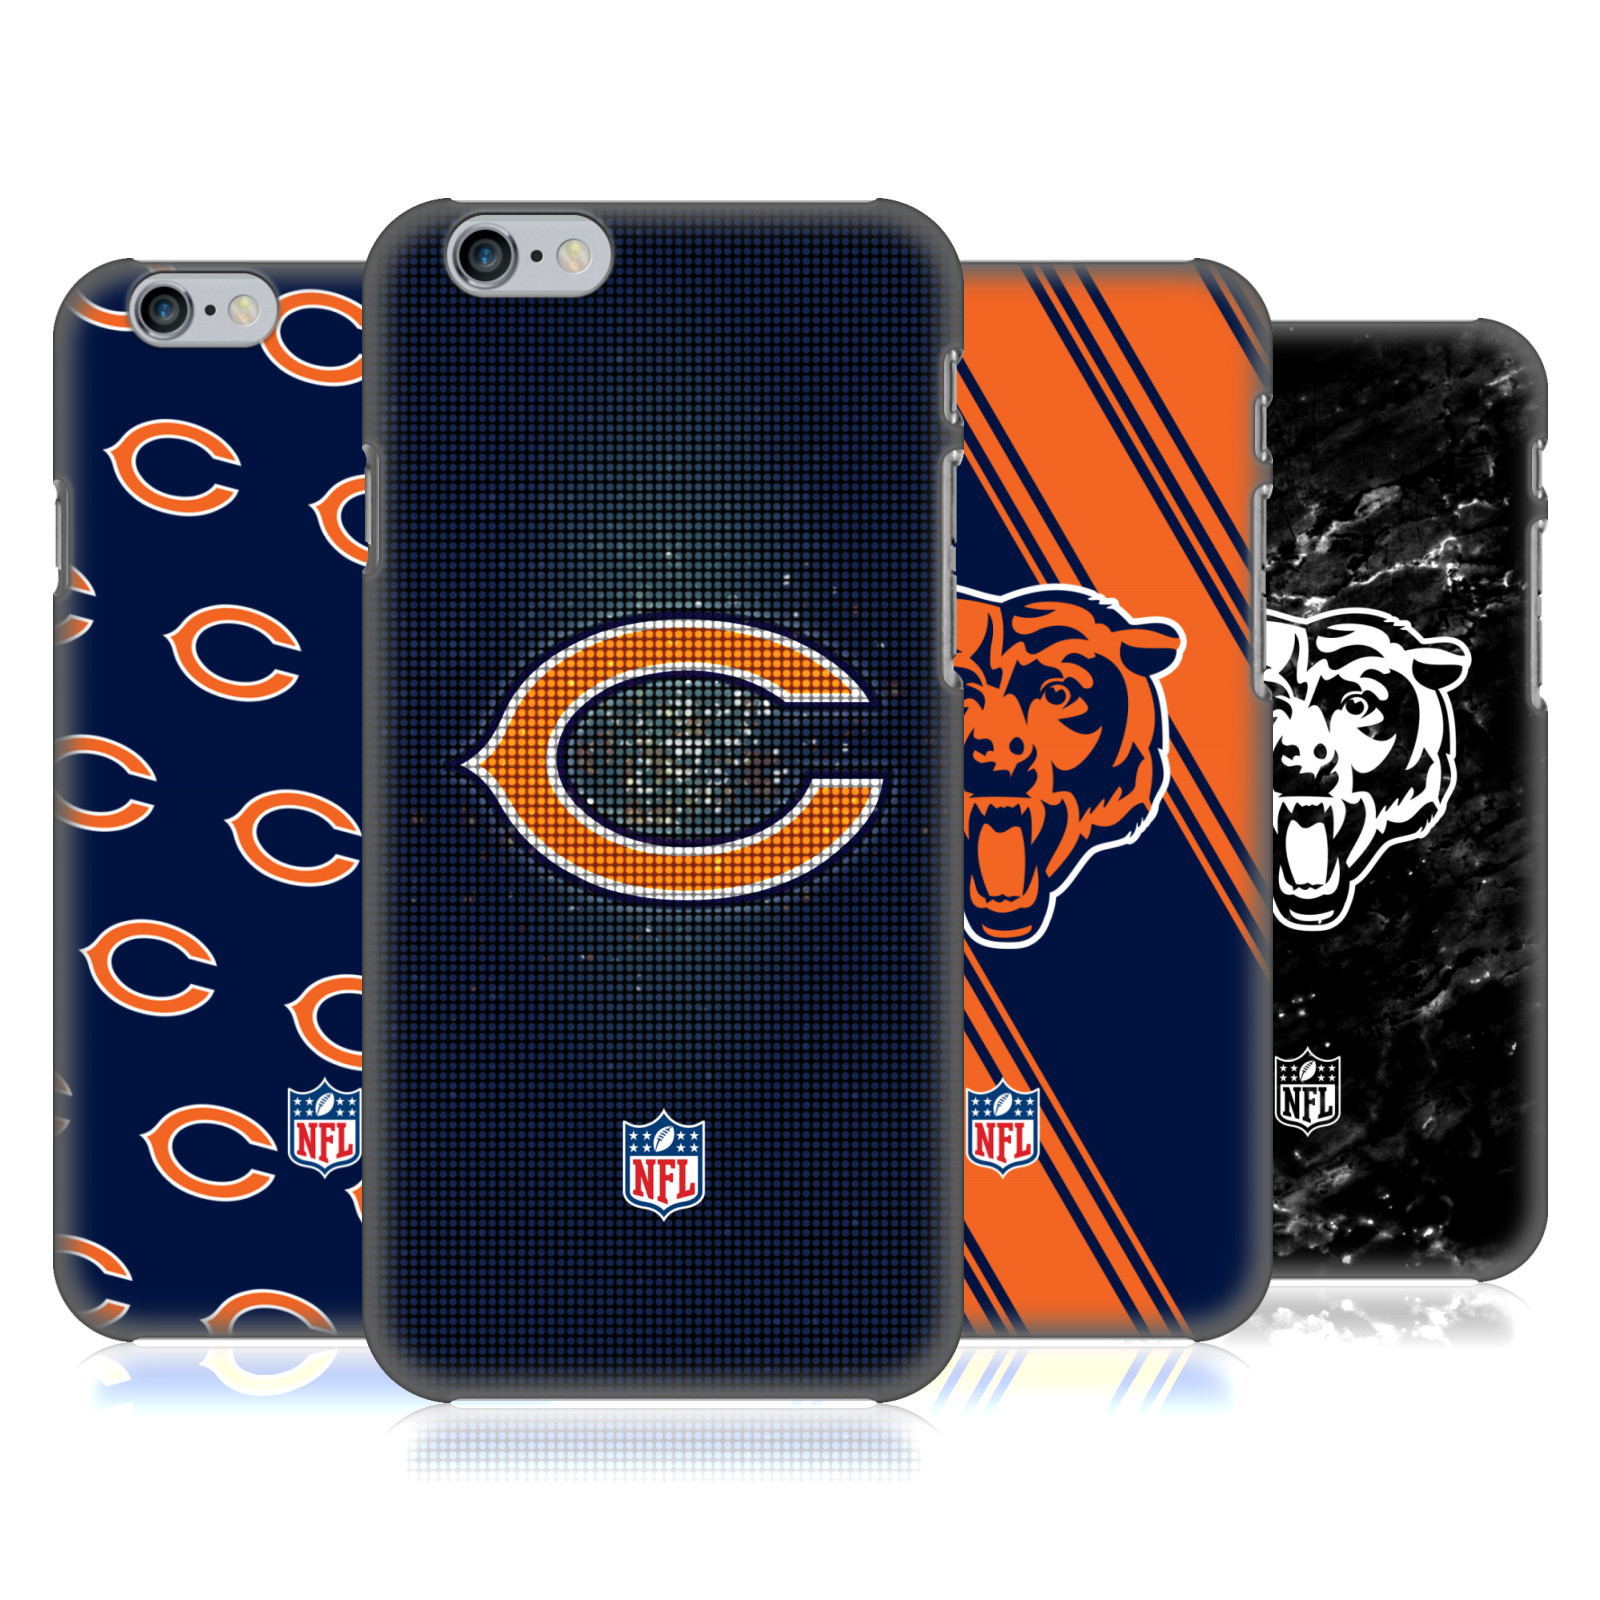 NFL 2017/18 Chicago Bears